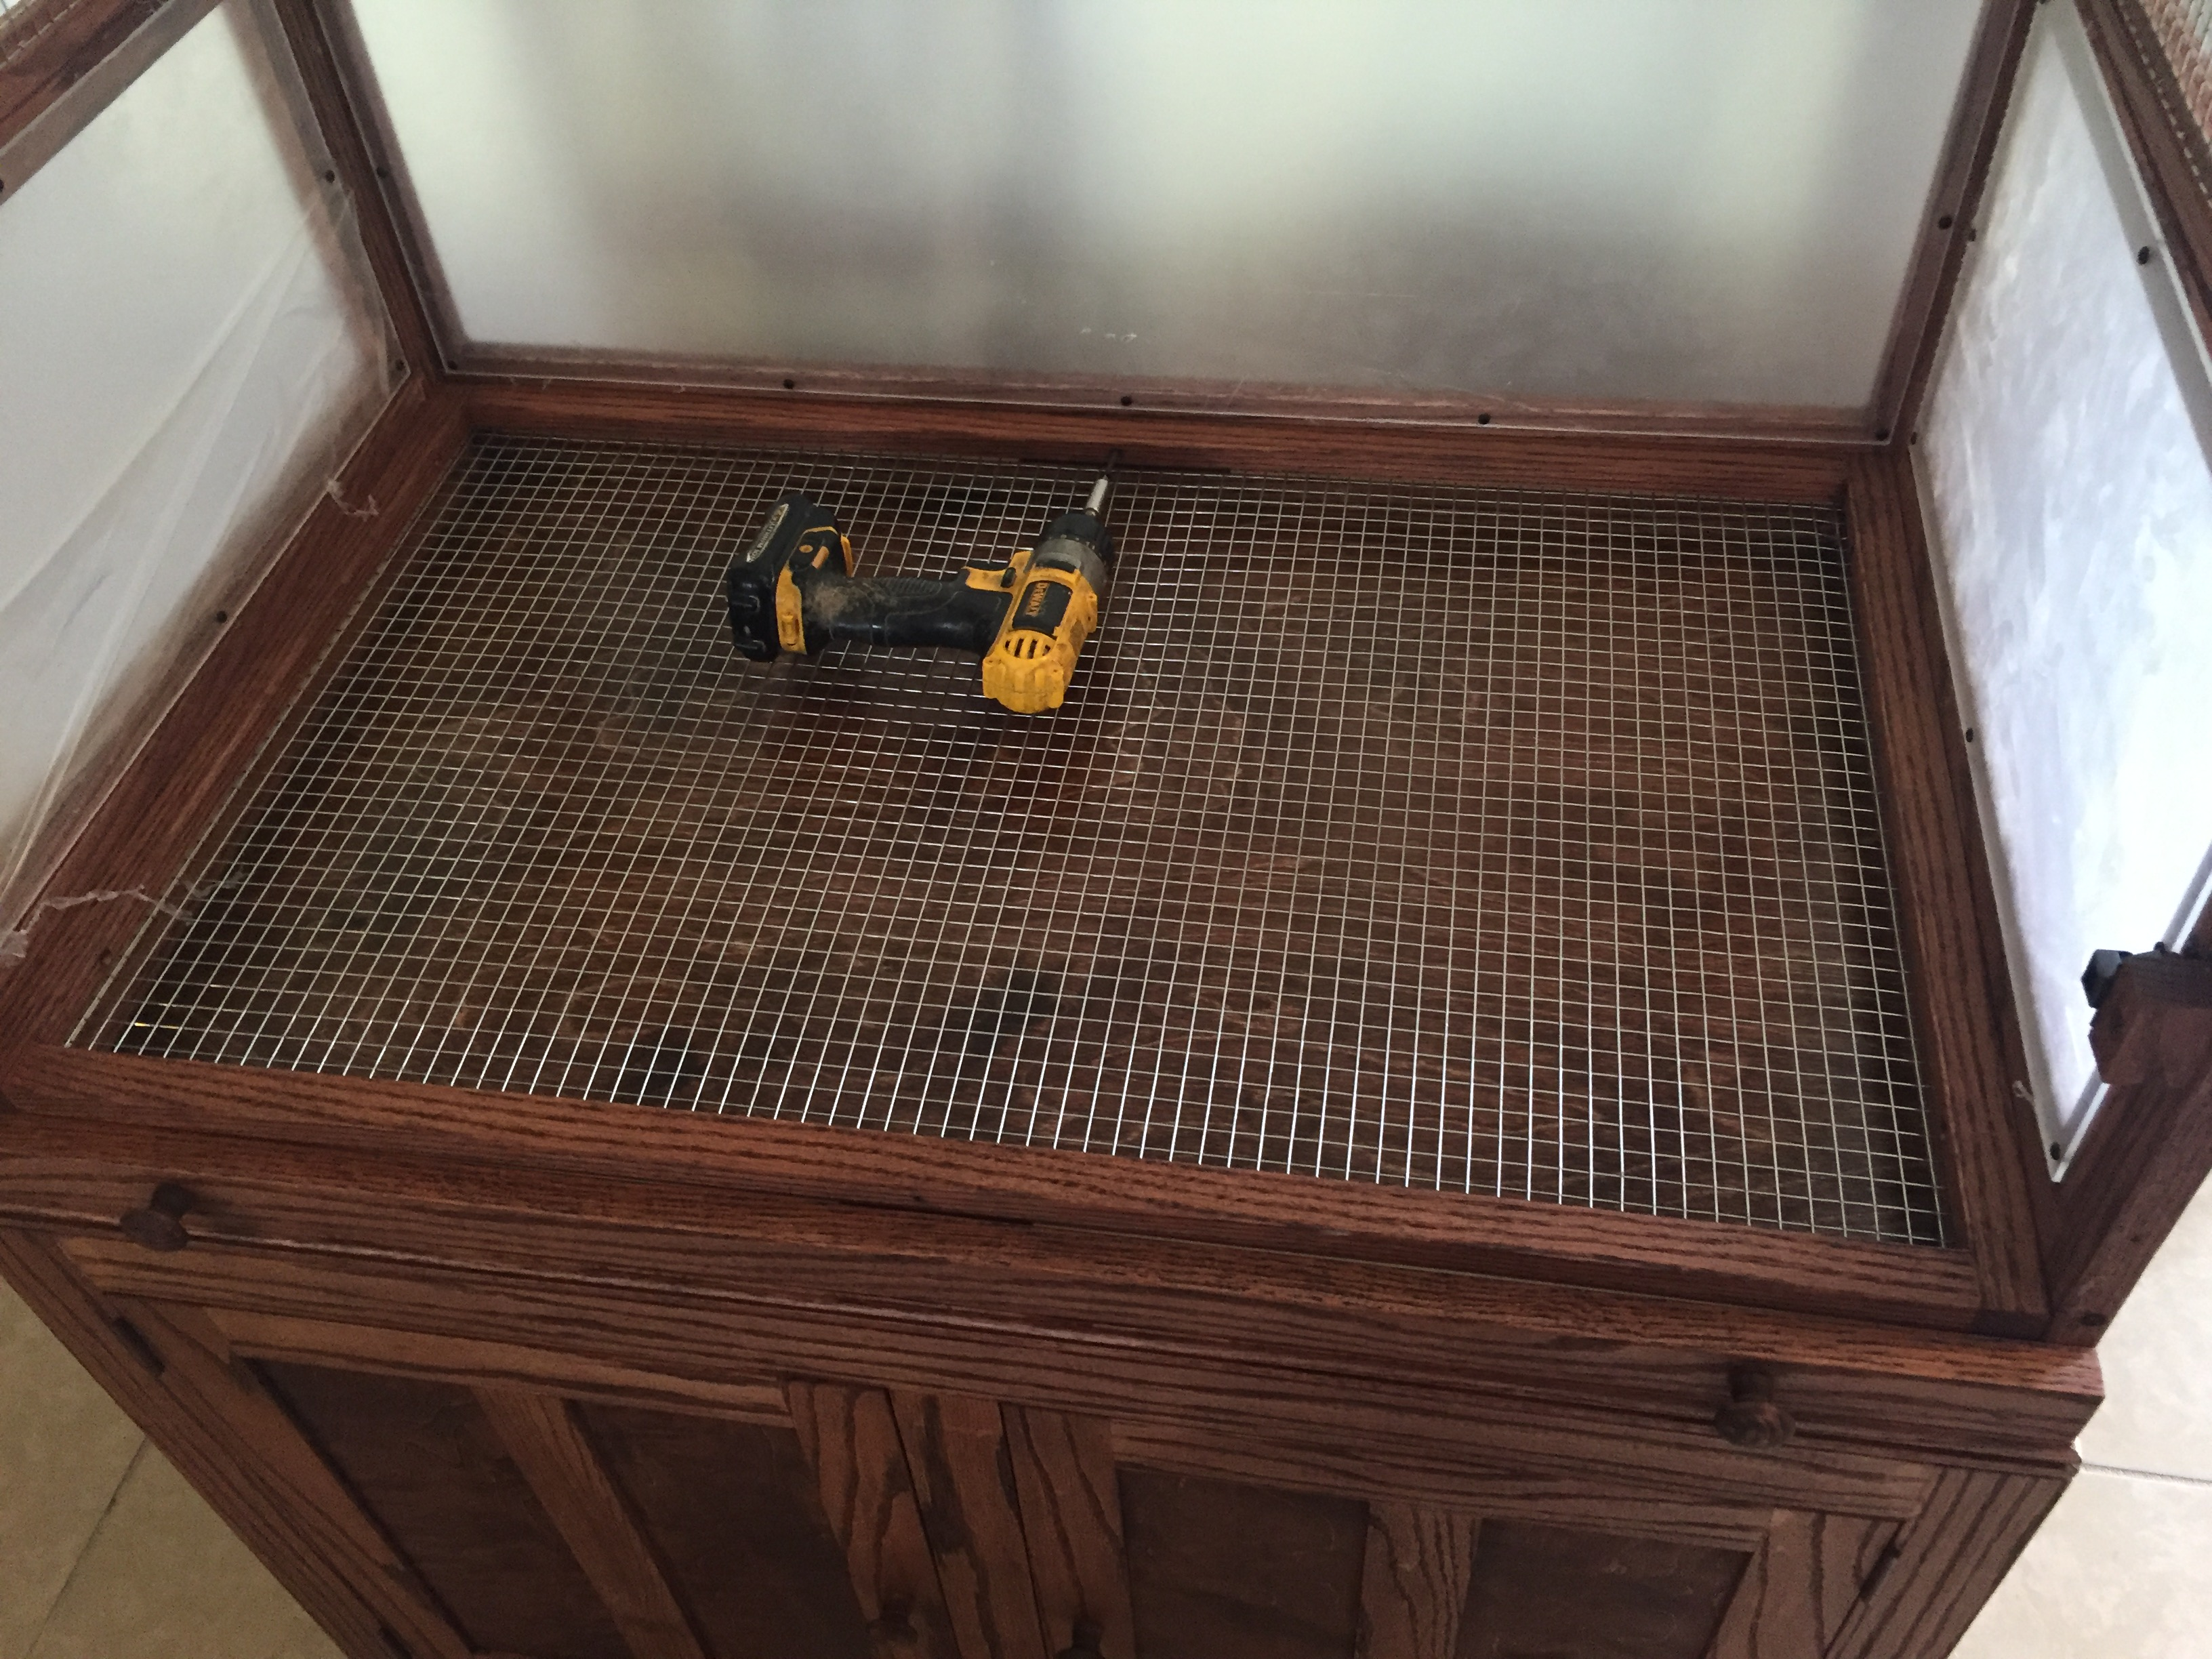 Picture of Drawer Placement and Bottom Screen Grate Assembly